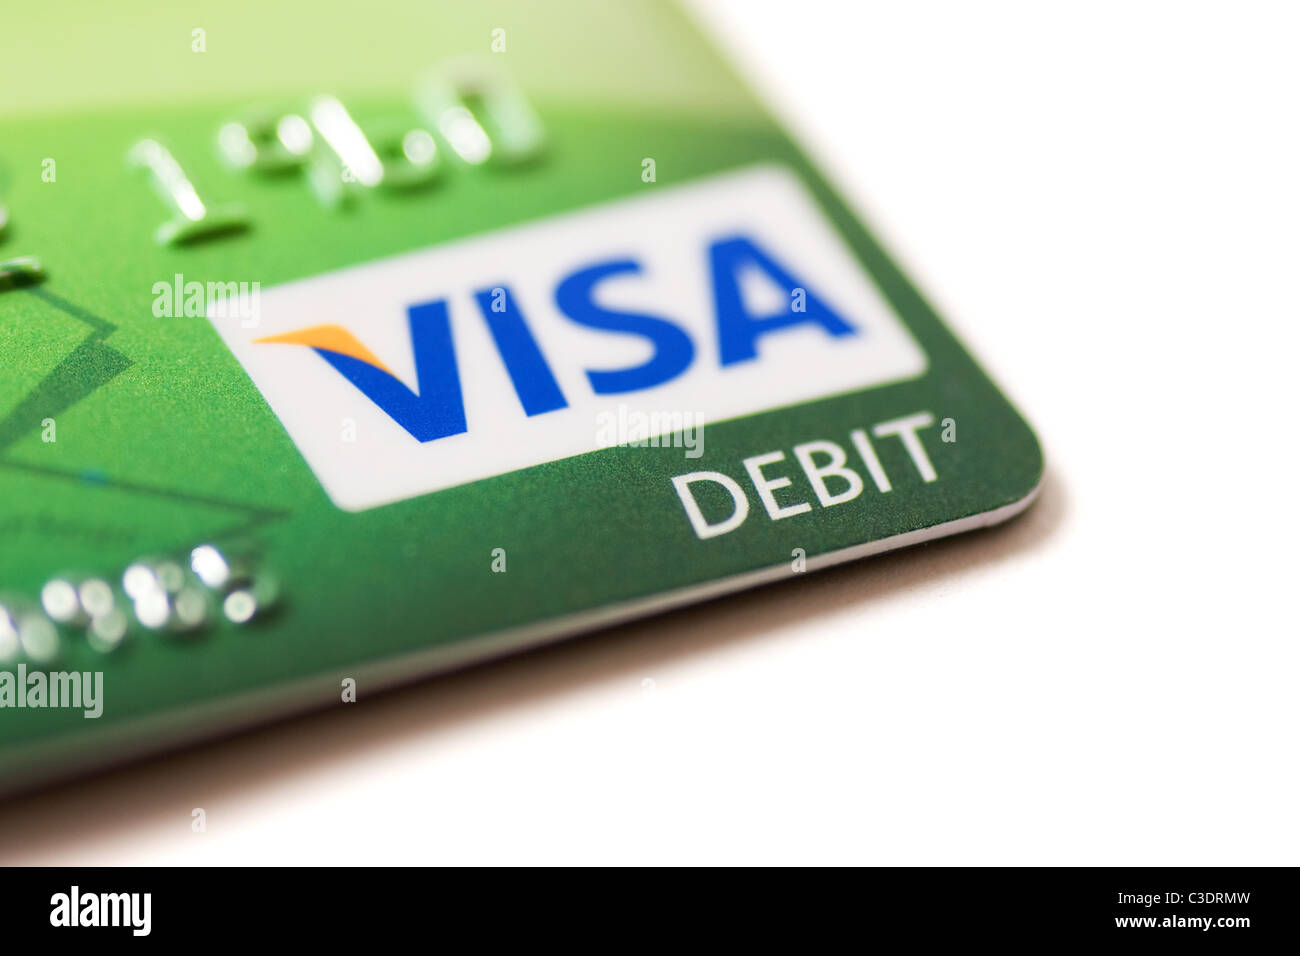 Lloyds bank debit card stock photos lloyds bank debit card stock close up detail of a lloyds tsb visa debit card stock image magicingreecefo Image collections